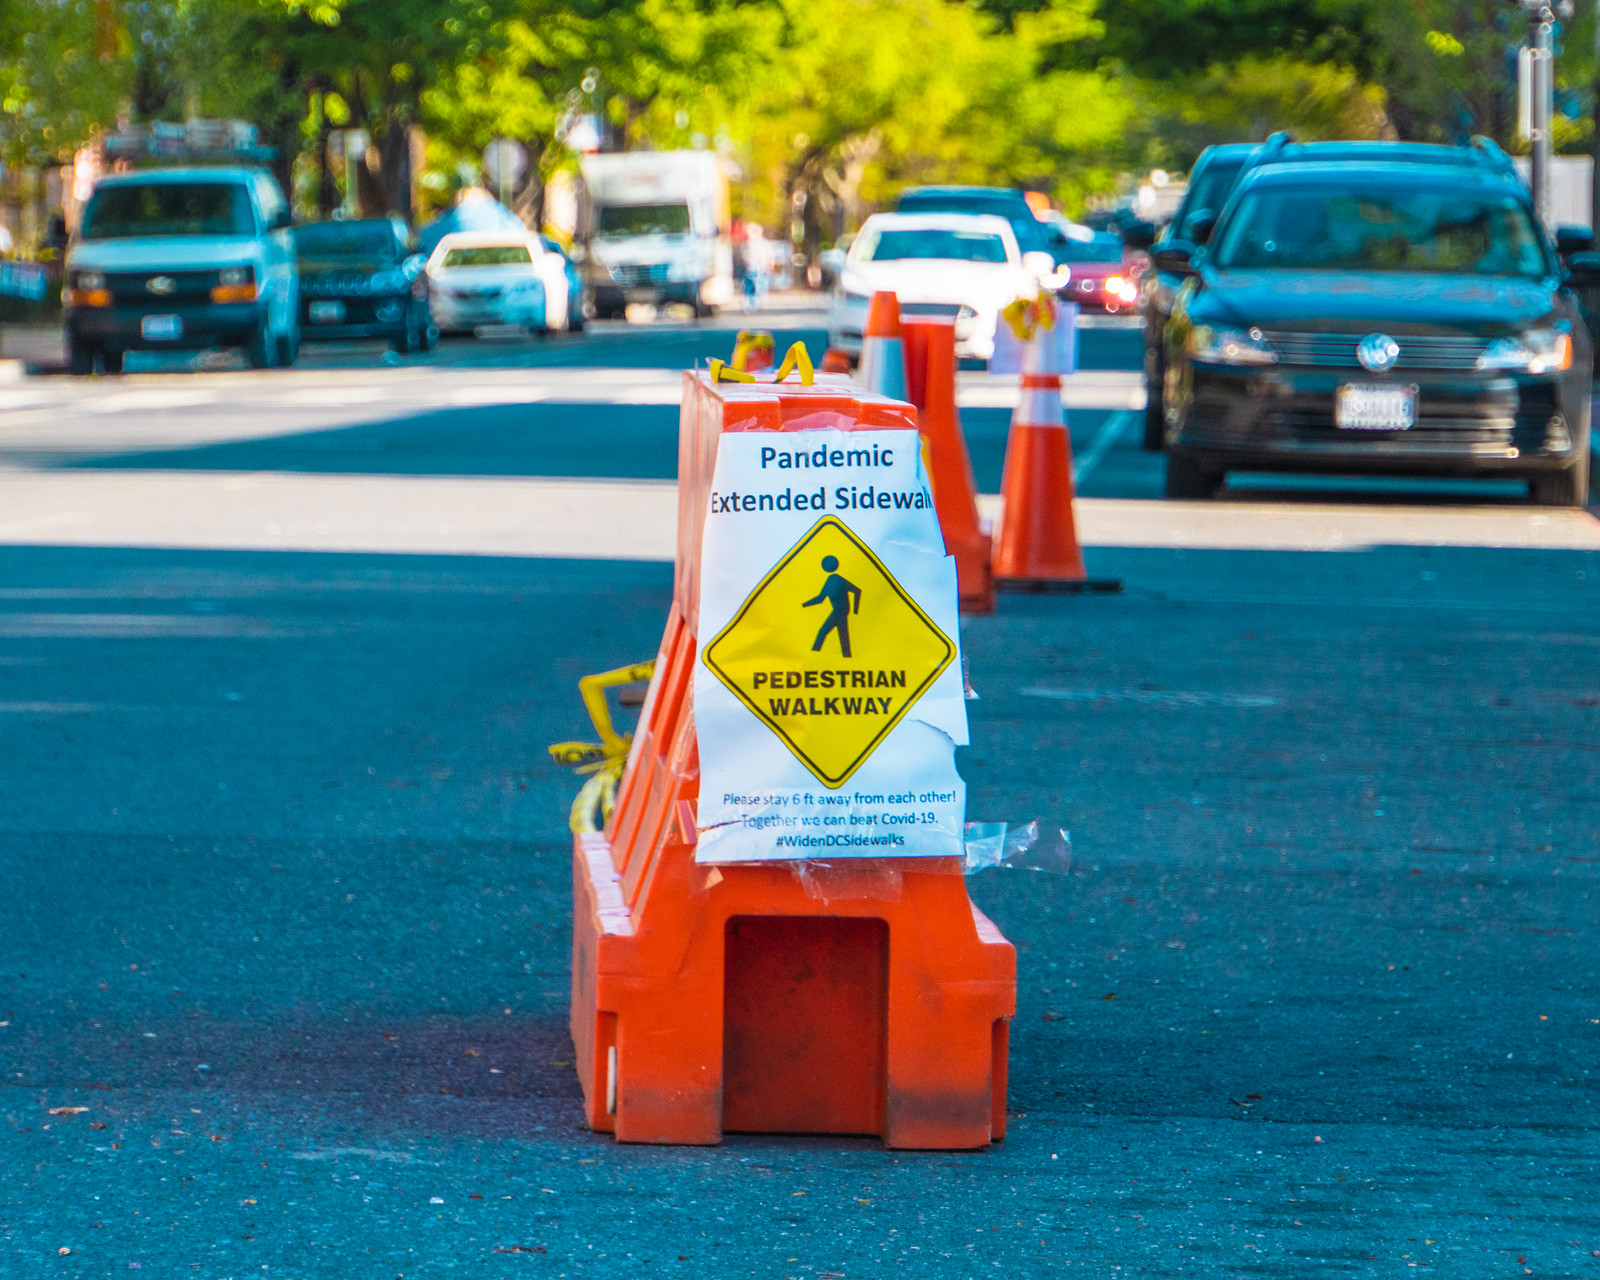 Thank you for publishing my photo, in DC will temporarily widen some sidewalks near grocery stores and other businesses – Greater Greater Washington